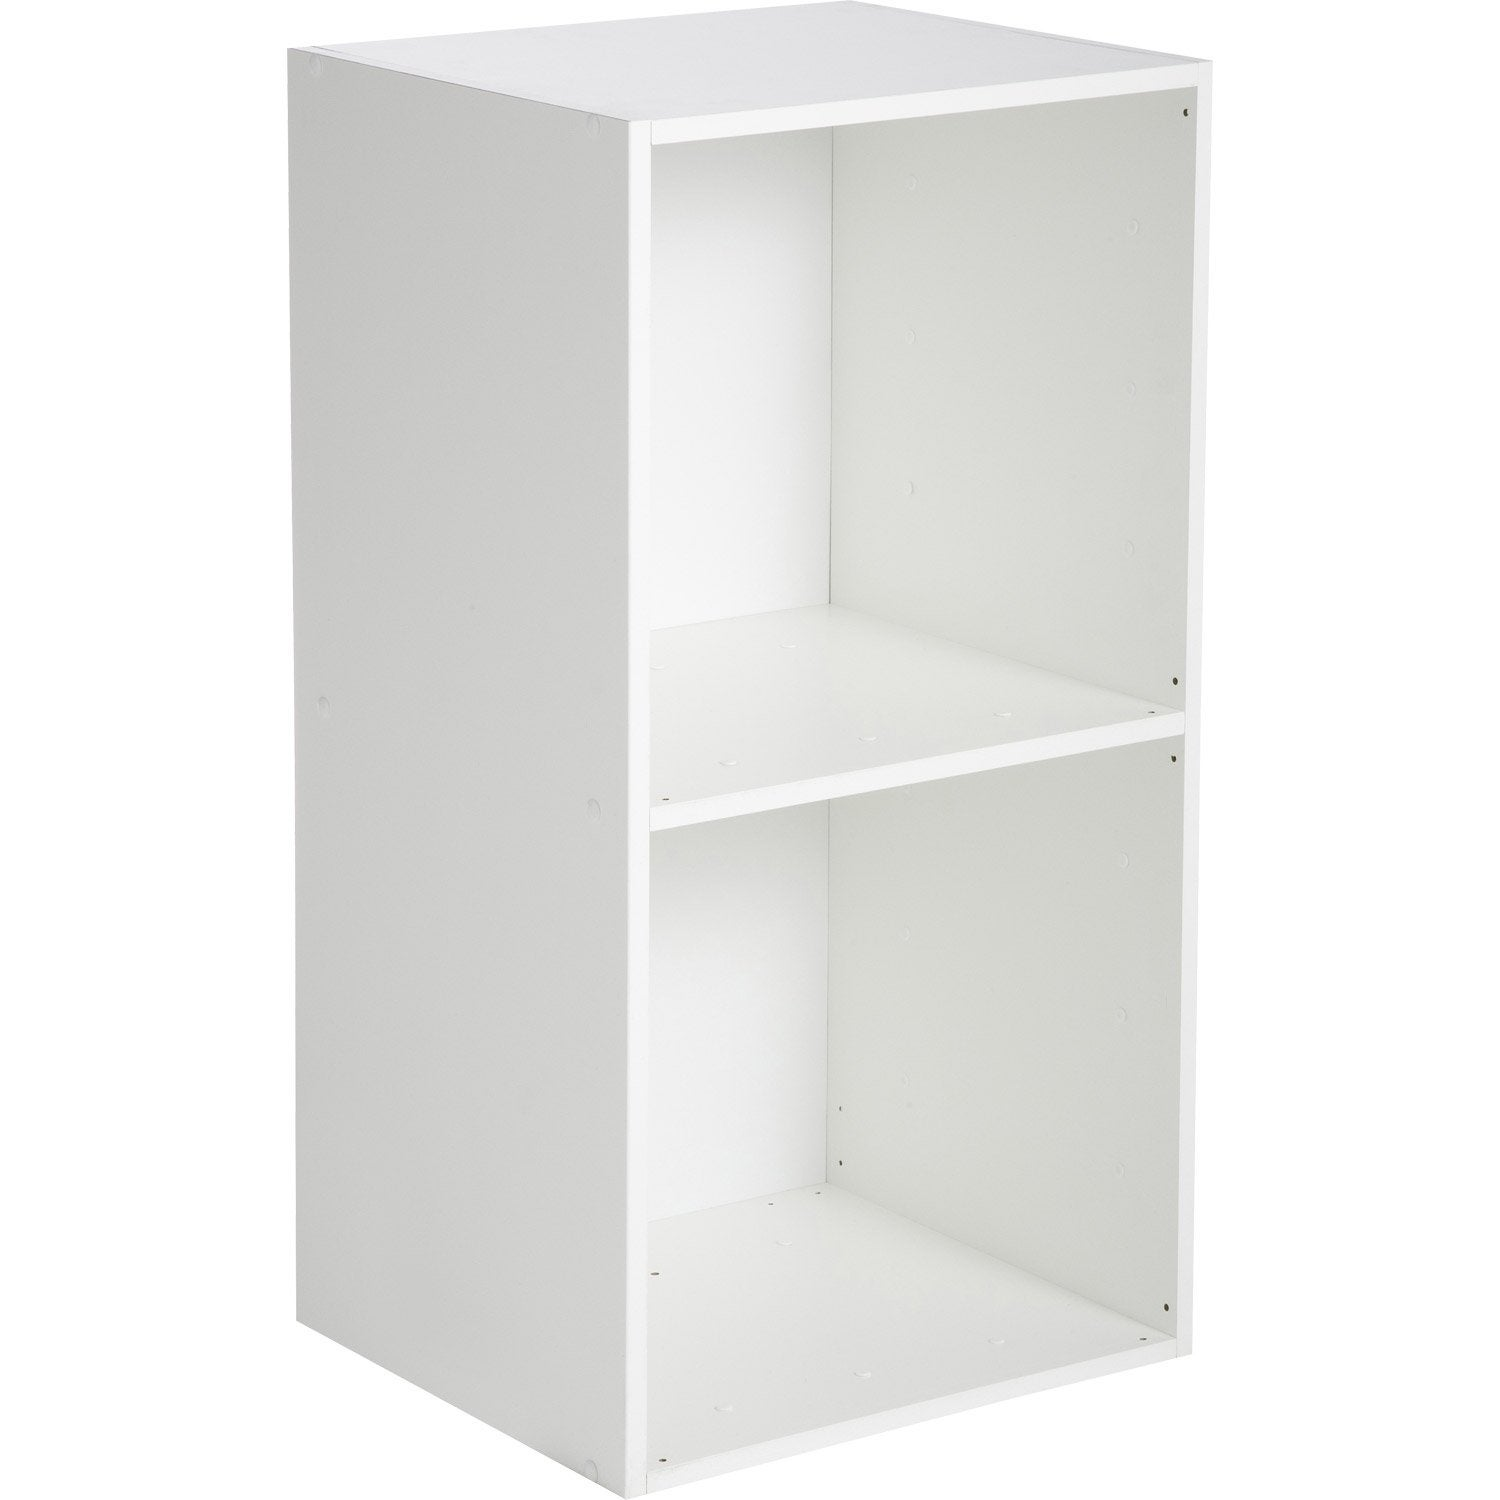 Etag re 2 cases multikaz blanc x x cm leroy merlin - Ikea cube de rangement ...